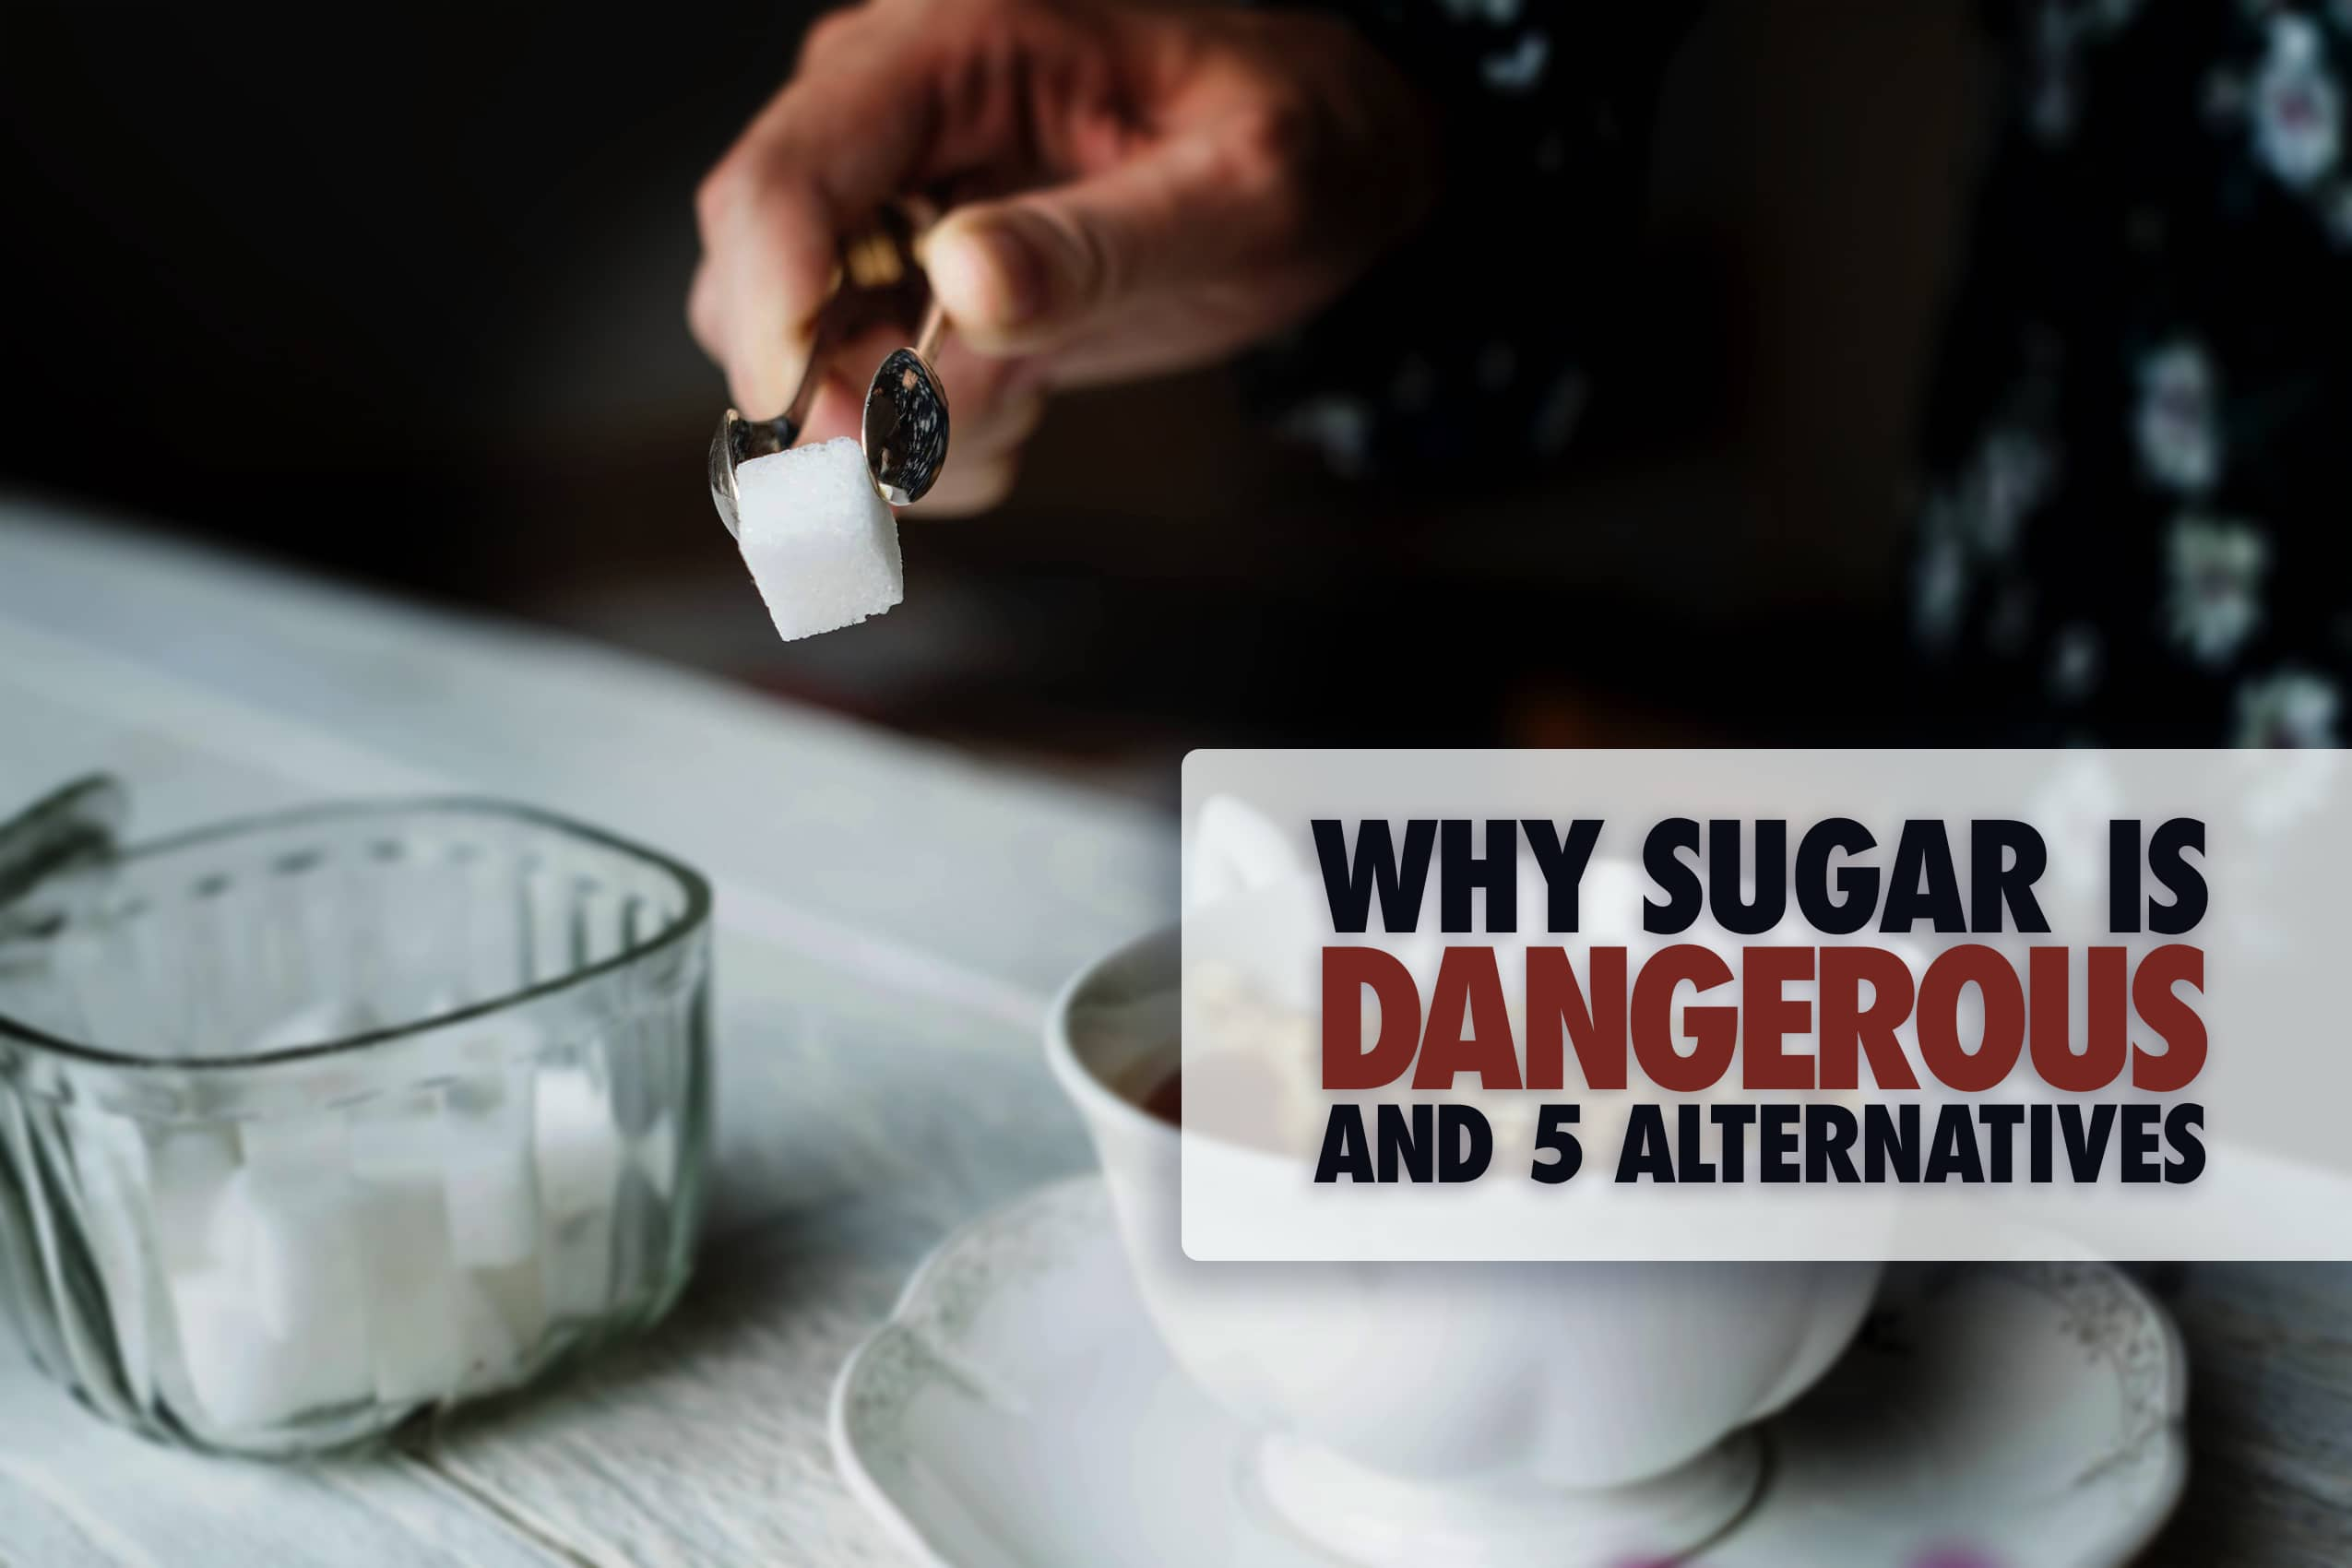 Five reasons why refined sugar is dangerous